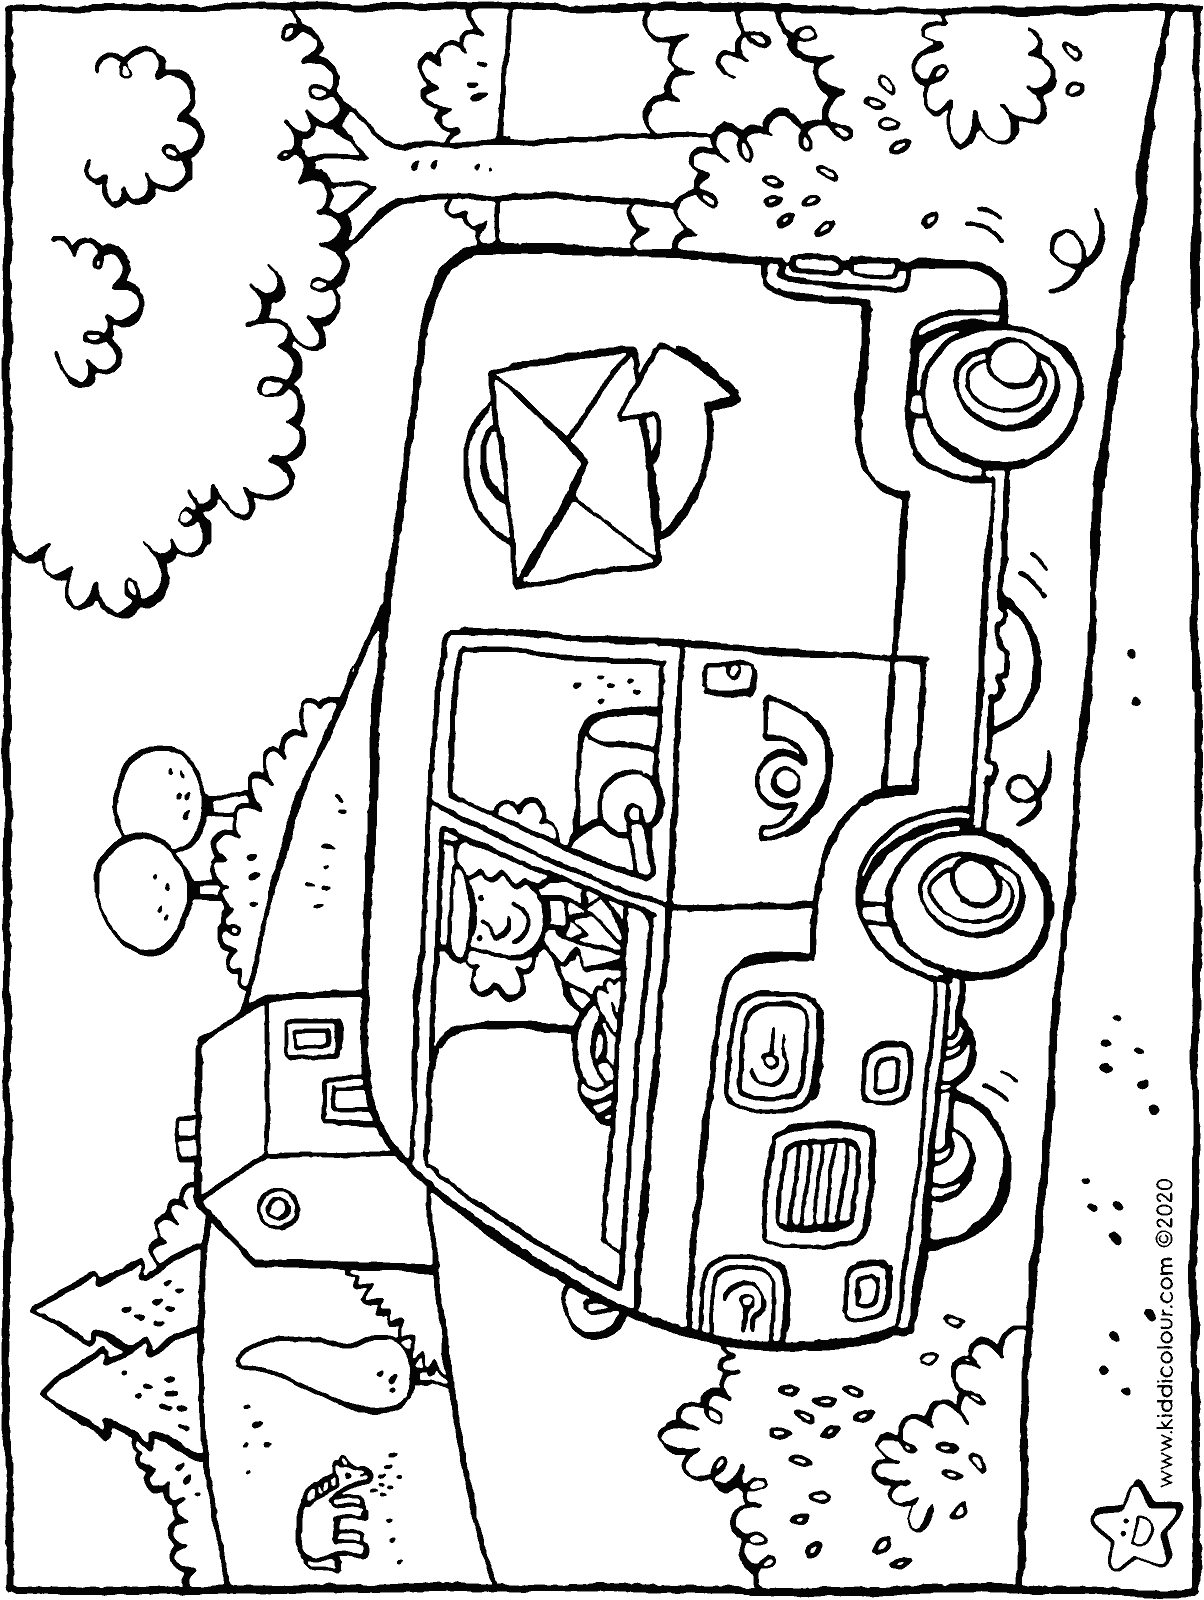 postal worker in post van colouring page drawing picture 01H